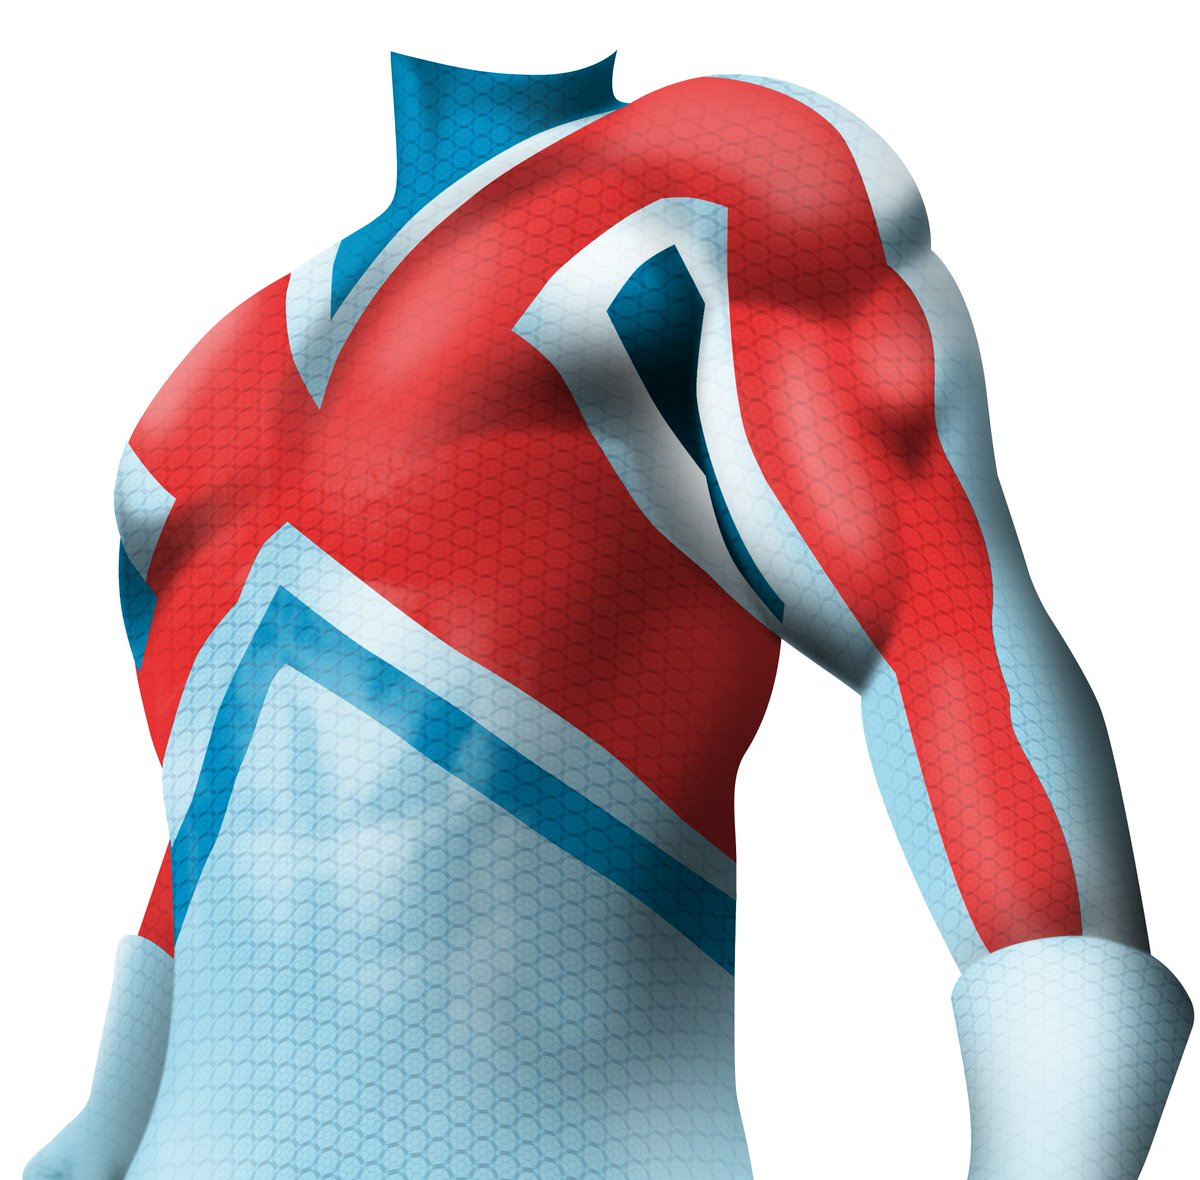 Captain Britain TV Show in the Works?